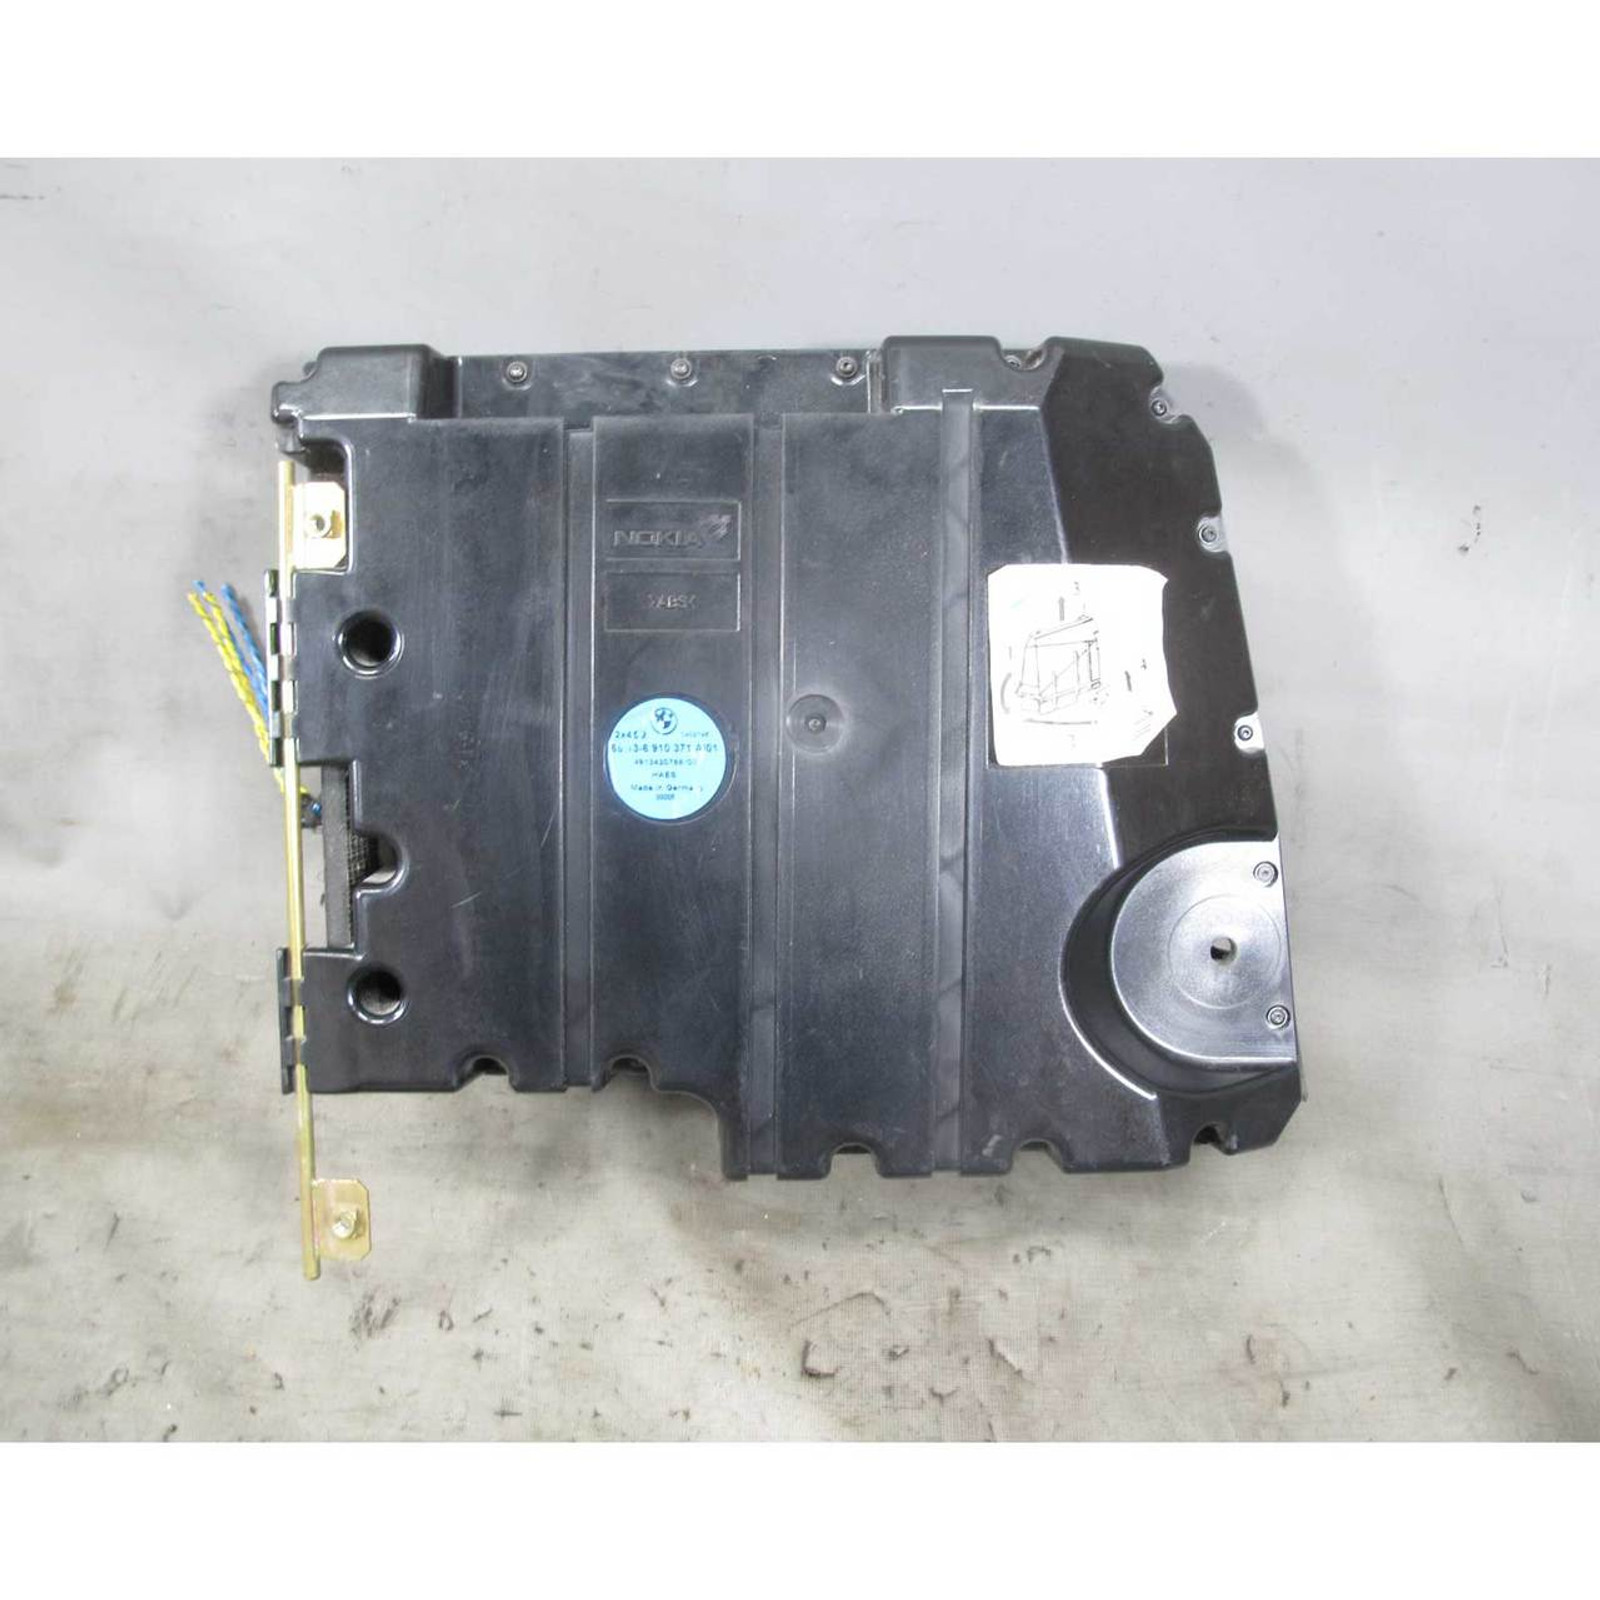 1999 2003 Bmw E39 5 Series Touring Wagon Rear Hifi Stereo Subwoofer Speaker Oem Prussian Motors